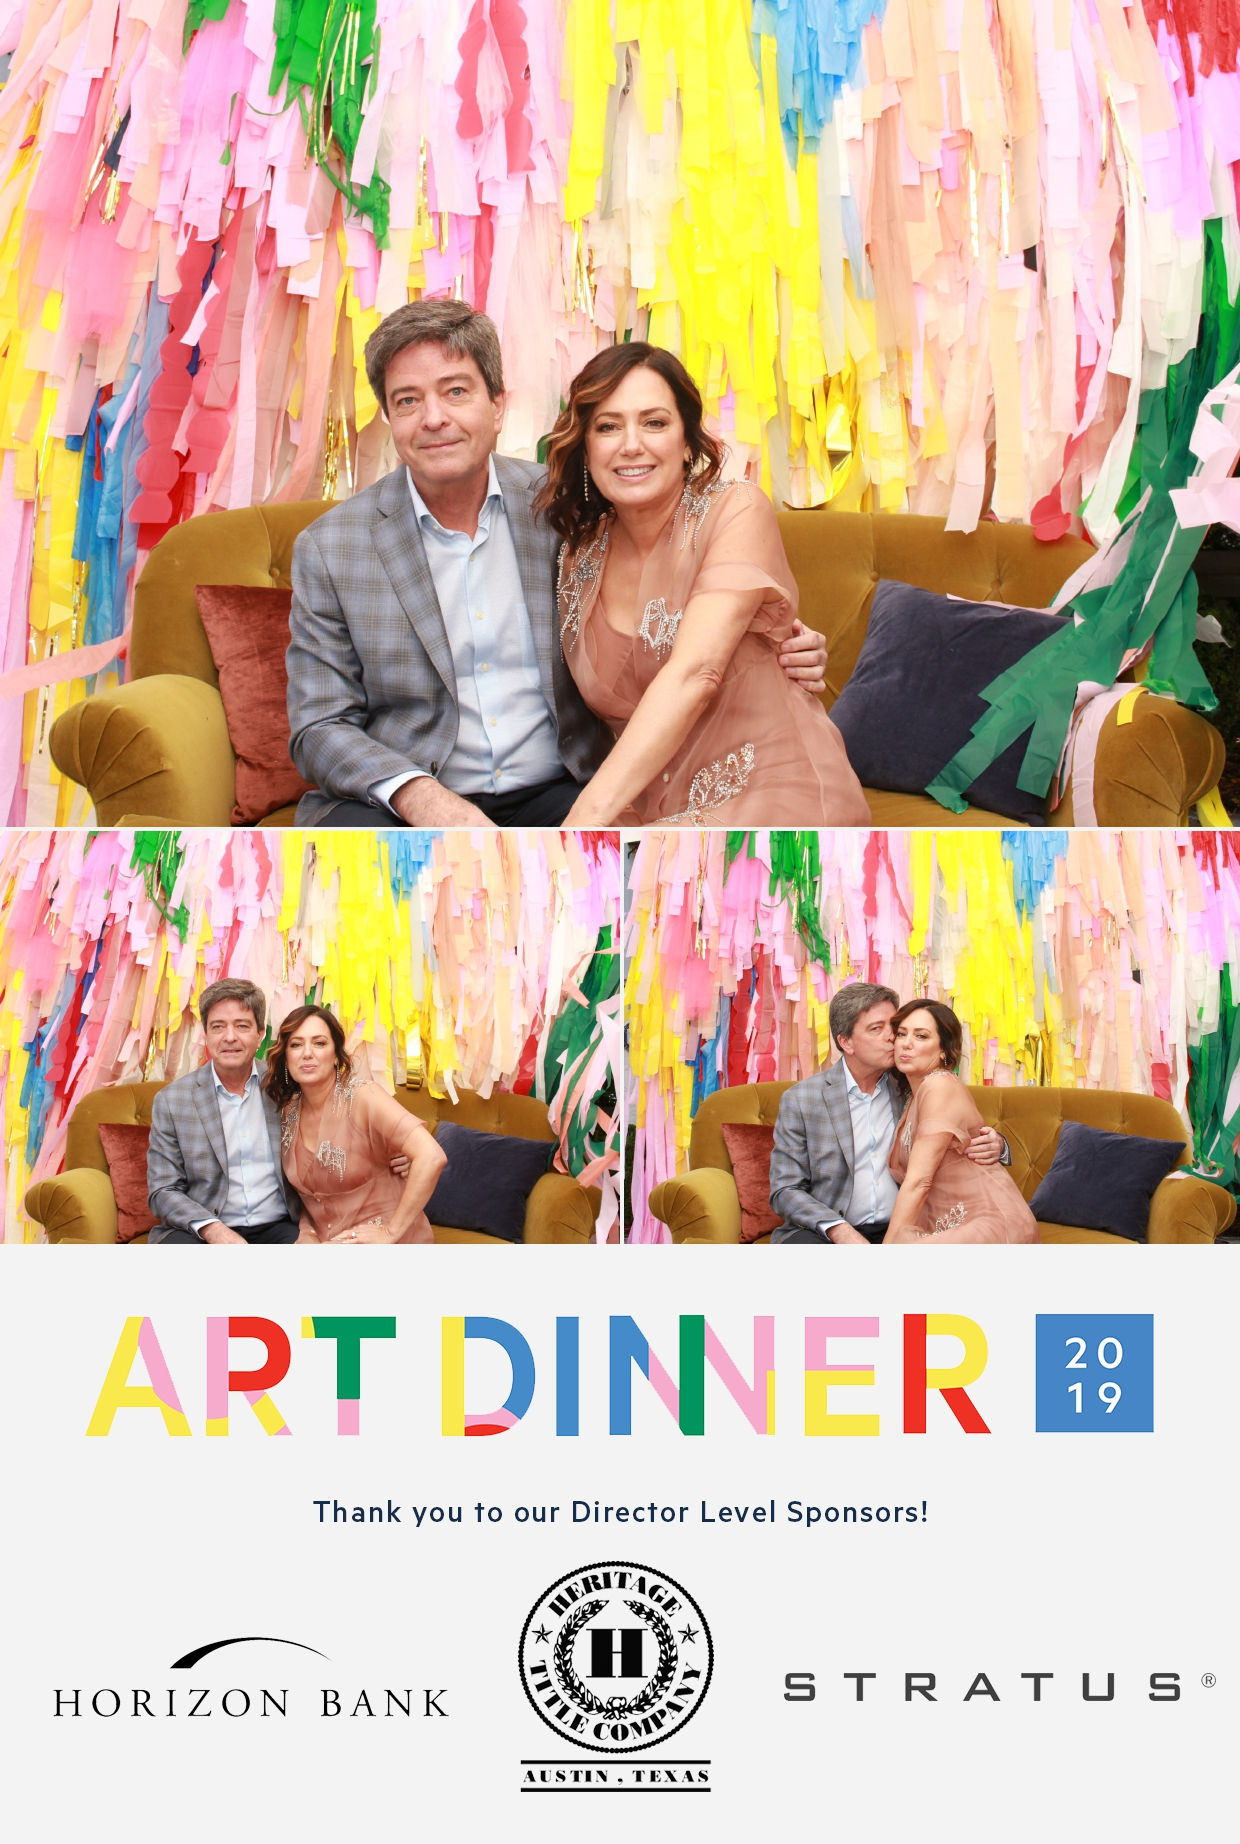 Oh Happy Day Booth - Art Dinner 2019 Customized-2.jpg